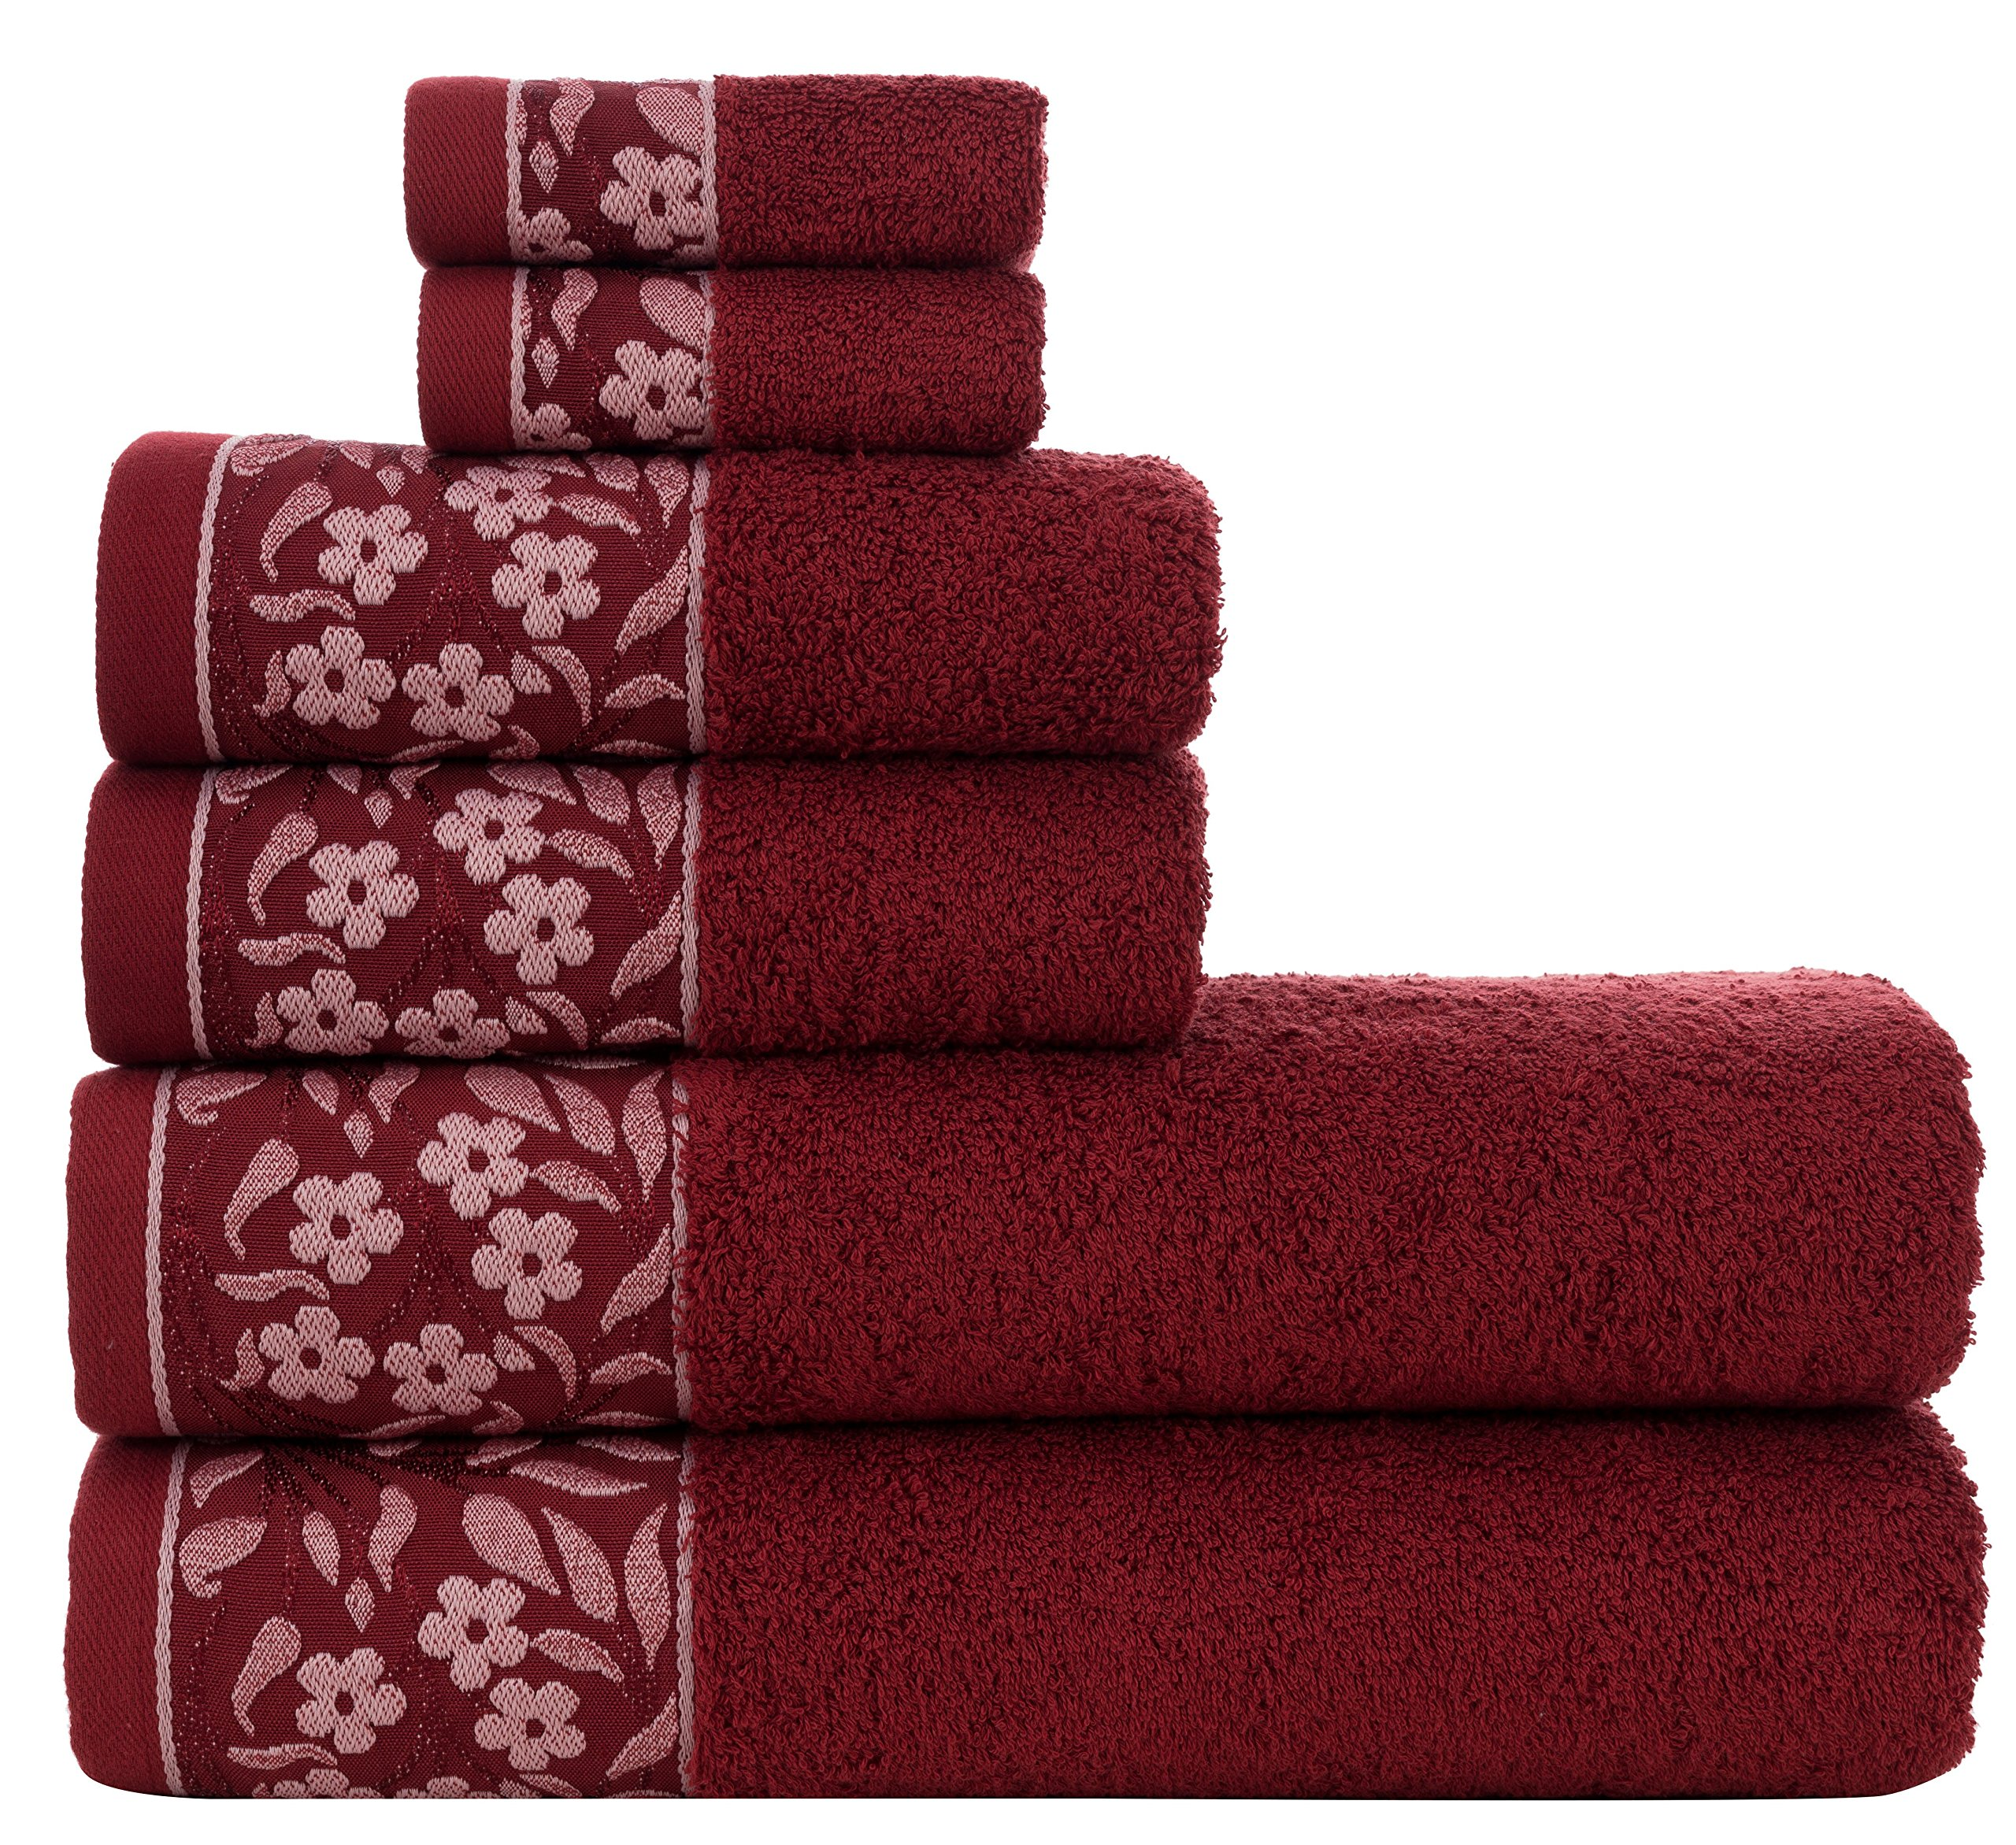 HYGGE Premium 100% Turkish Cotton Towel Set with Floral Jacquard; 2 Bath Towels (27'' x 56''); 2 Hand Towels (19'' x 32''); 2 Washcloths (12'' x 12'') (Claret Red) by HYGGE